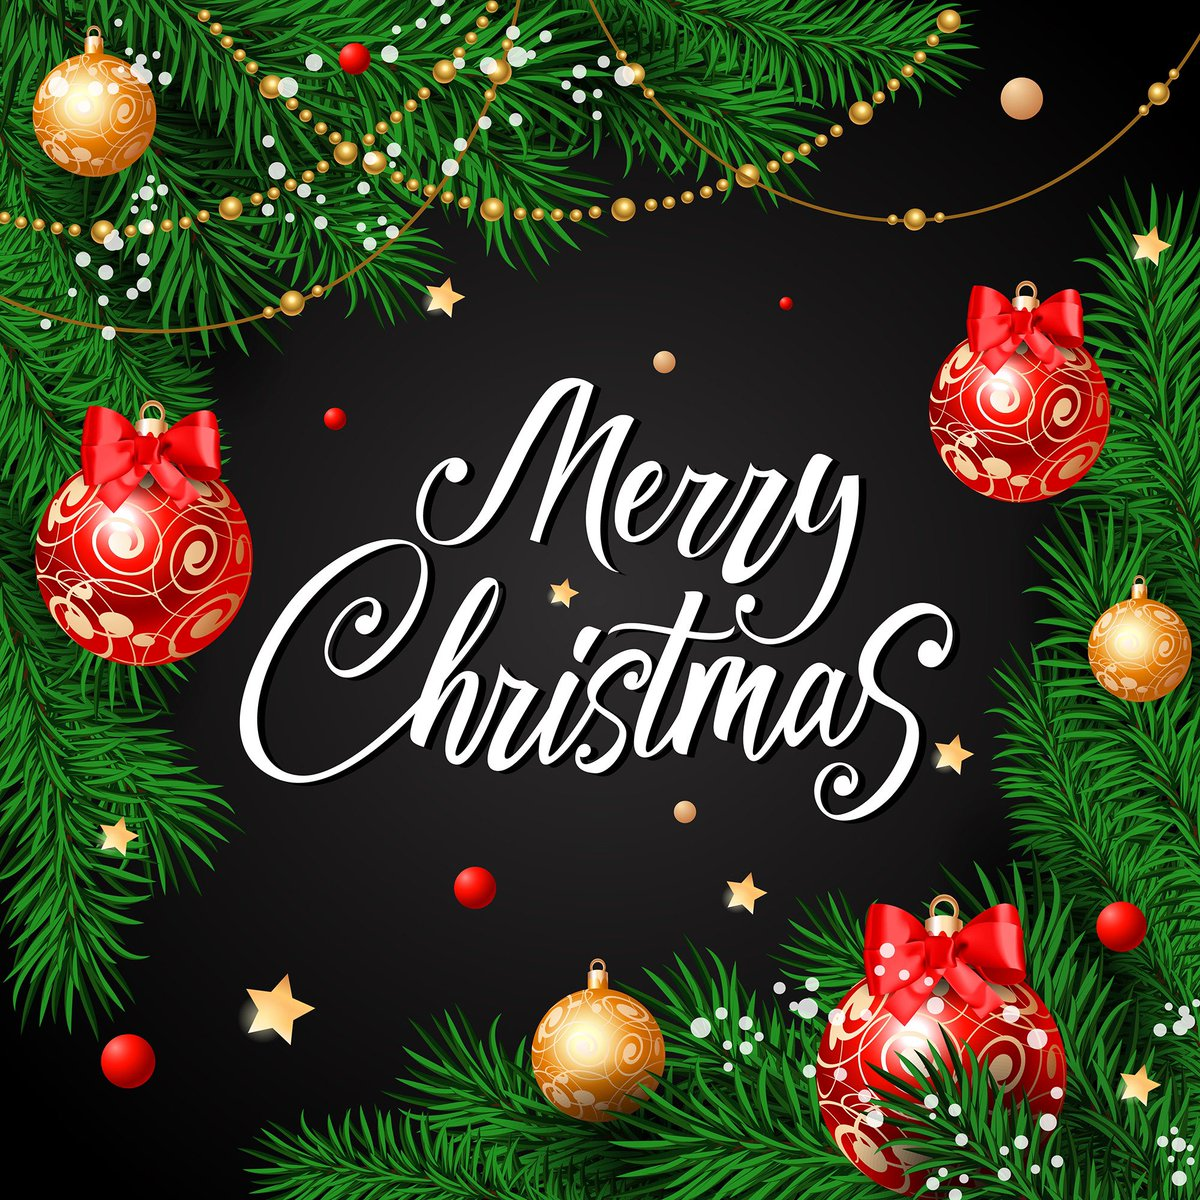 It's the season to be jolly... may you find many reasons for it this year. Merry Christmas ♥️